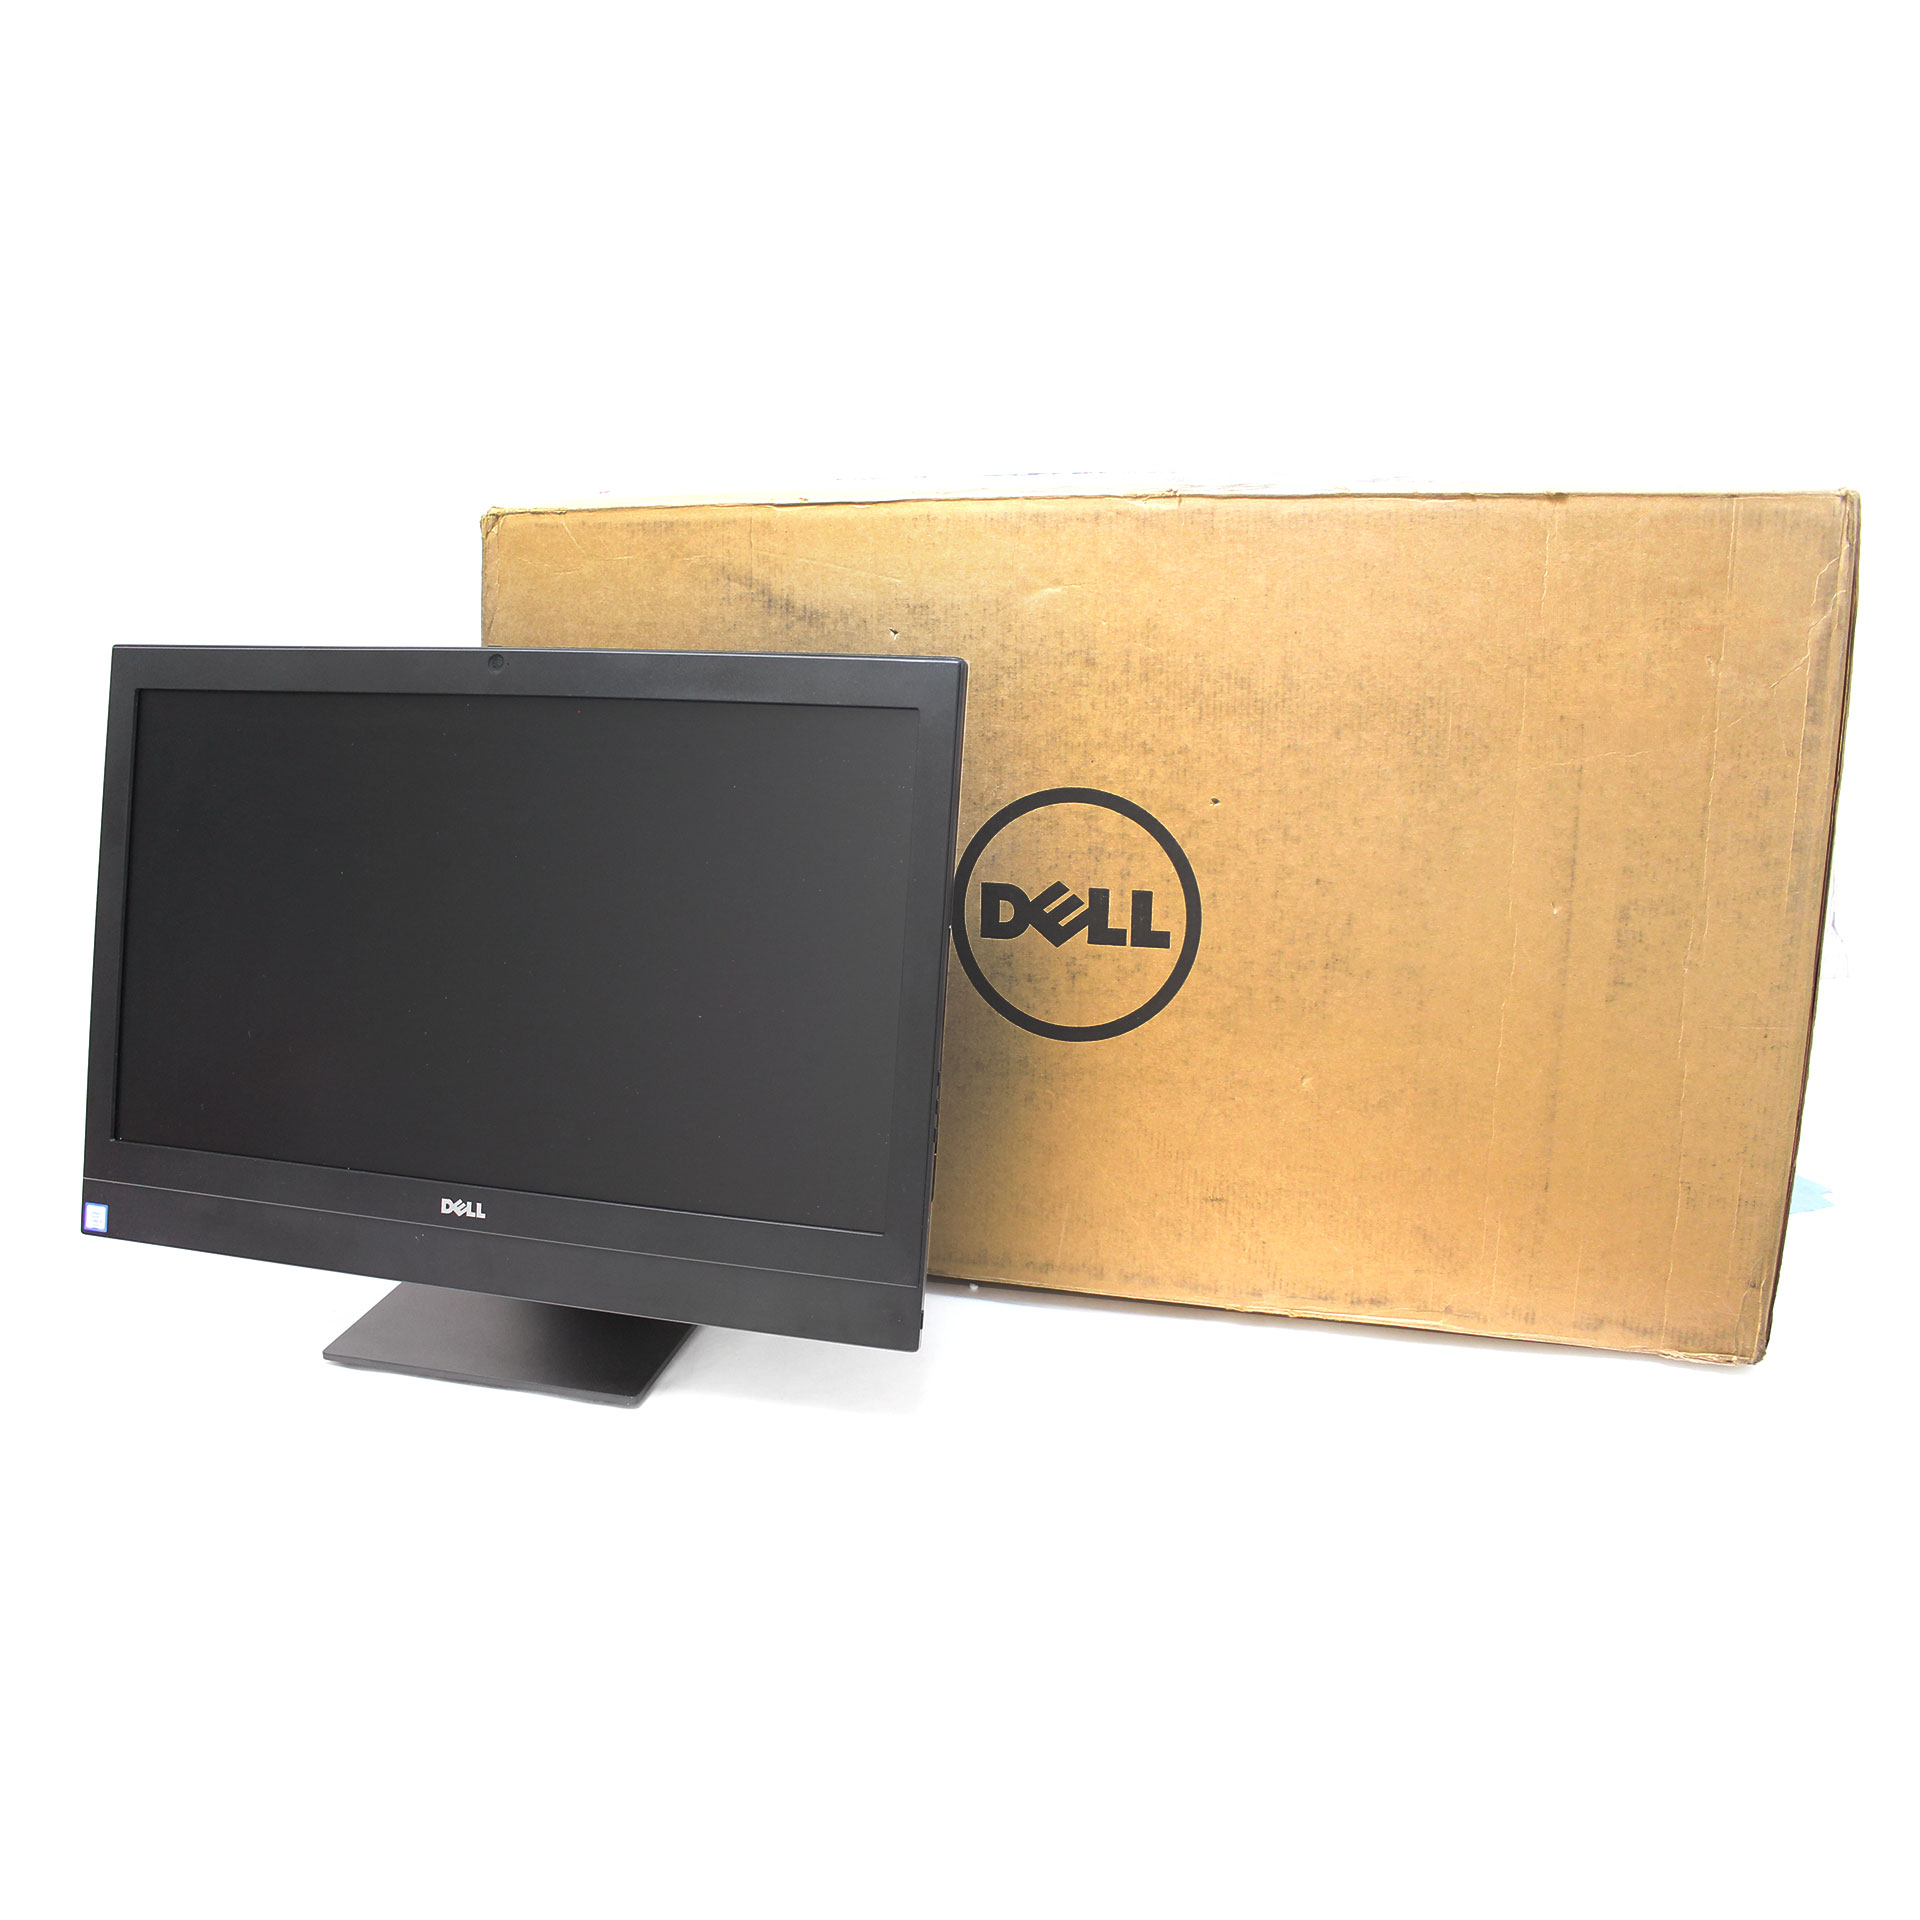 "Dell OptiPlex 7440 AIO Core i5-6500 8GB RAM 256GB SSD 23"" Win 10"